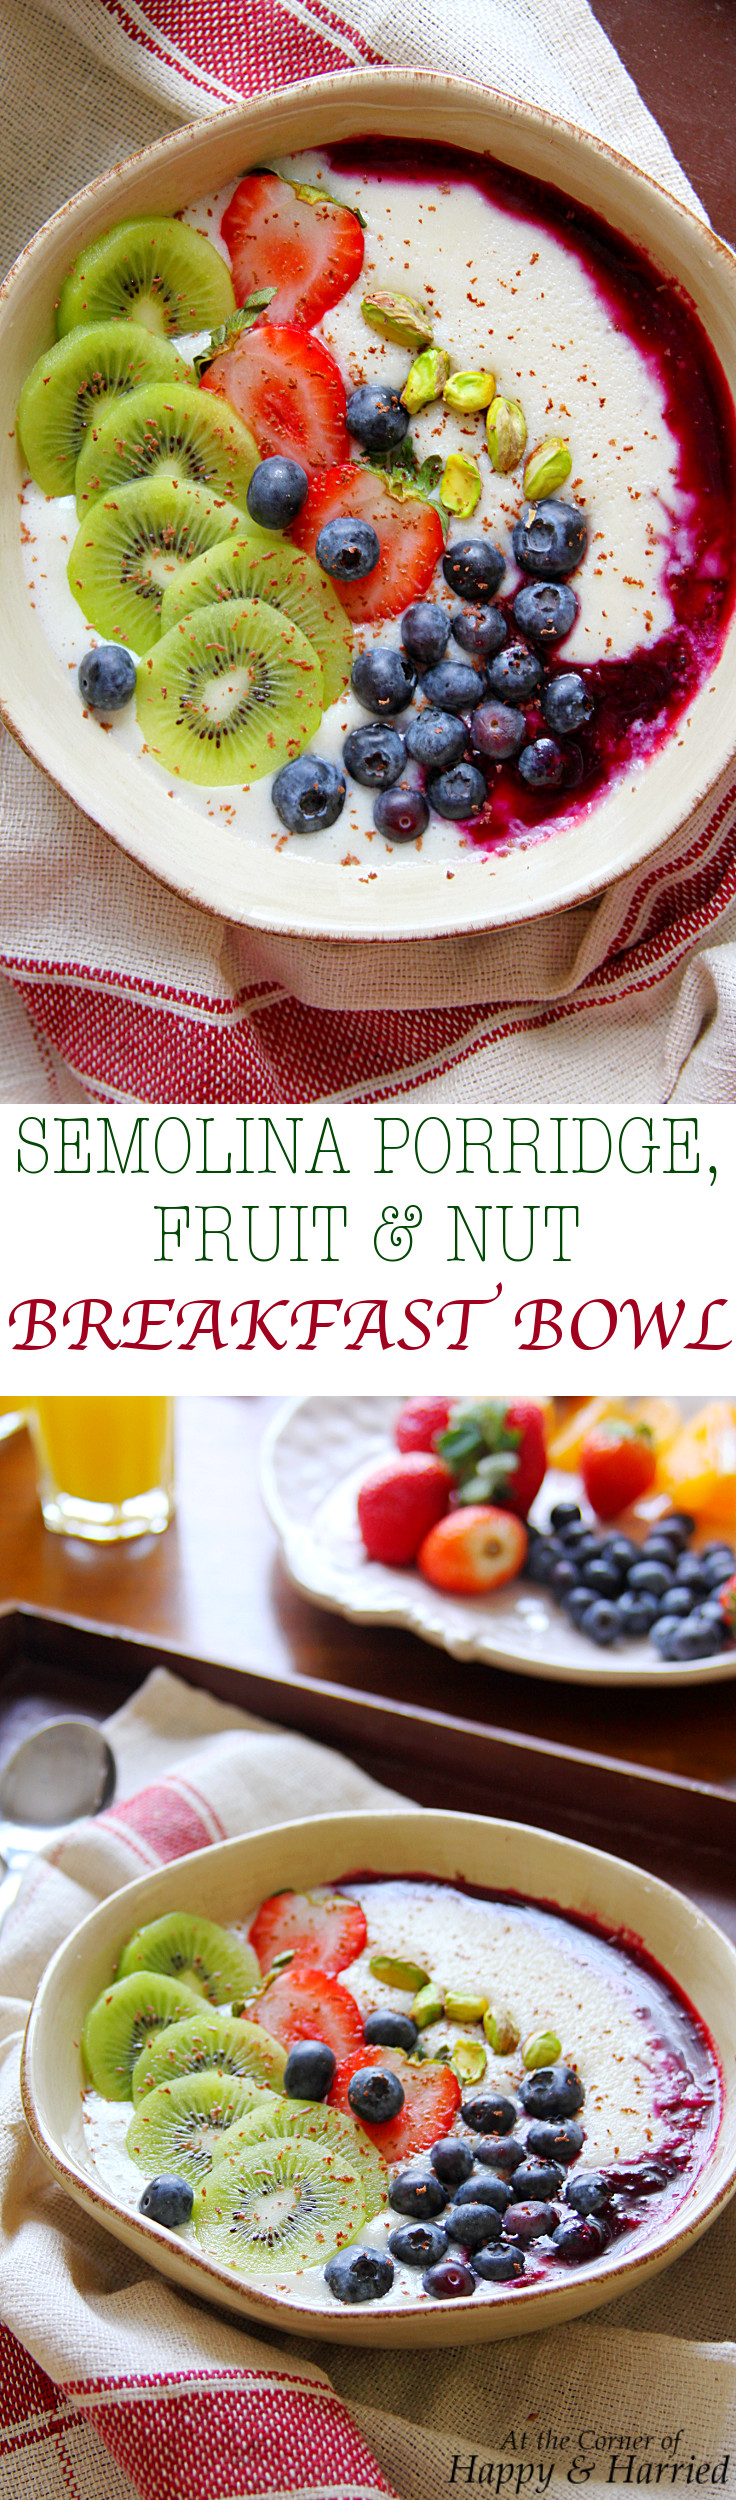 SEMOLINA PORRIDGE, FRUIT & NUT BREAKFAST BOWL - HAPPY&HARRIED